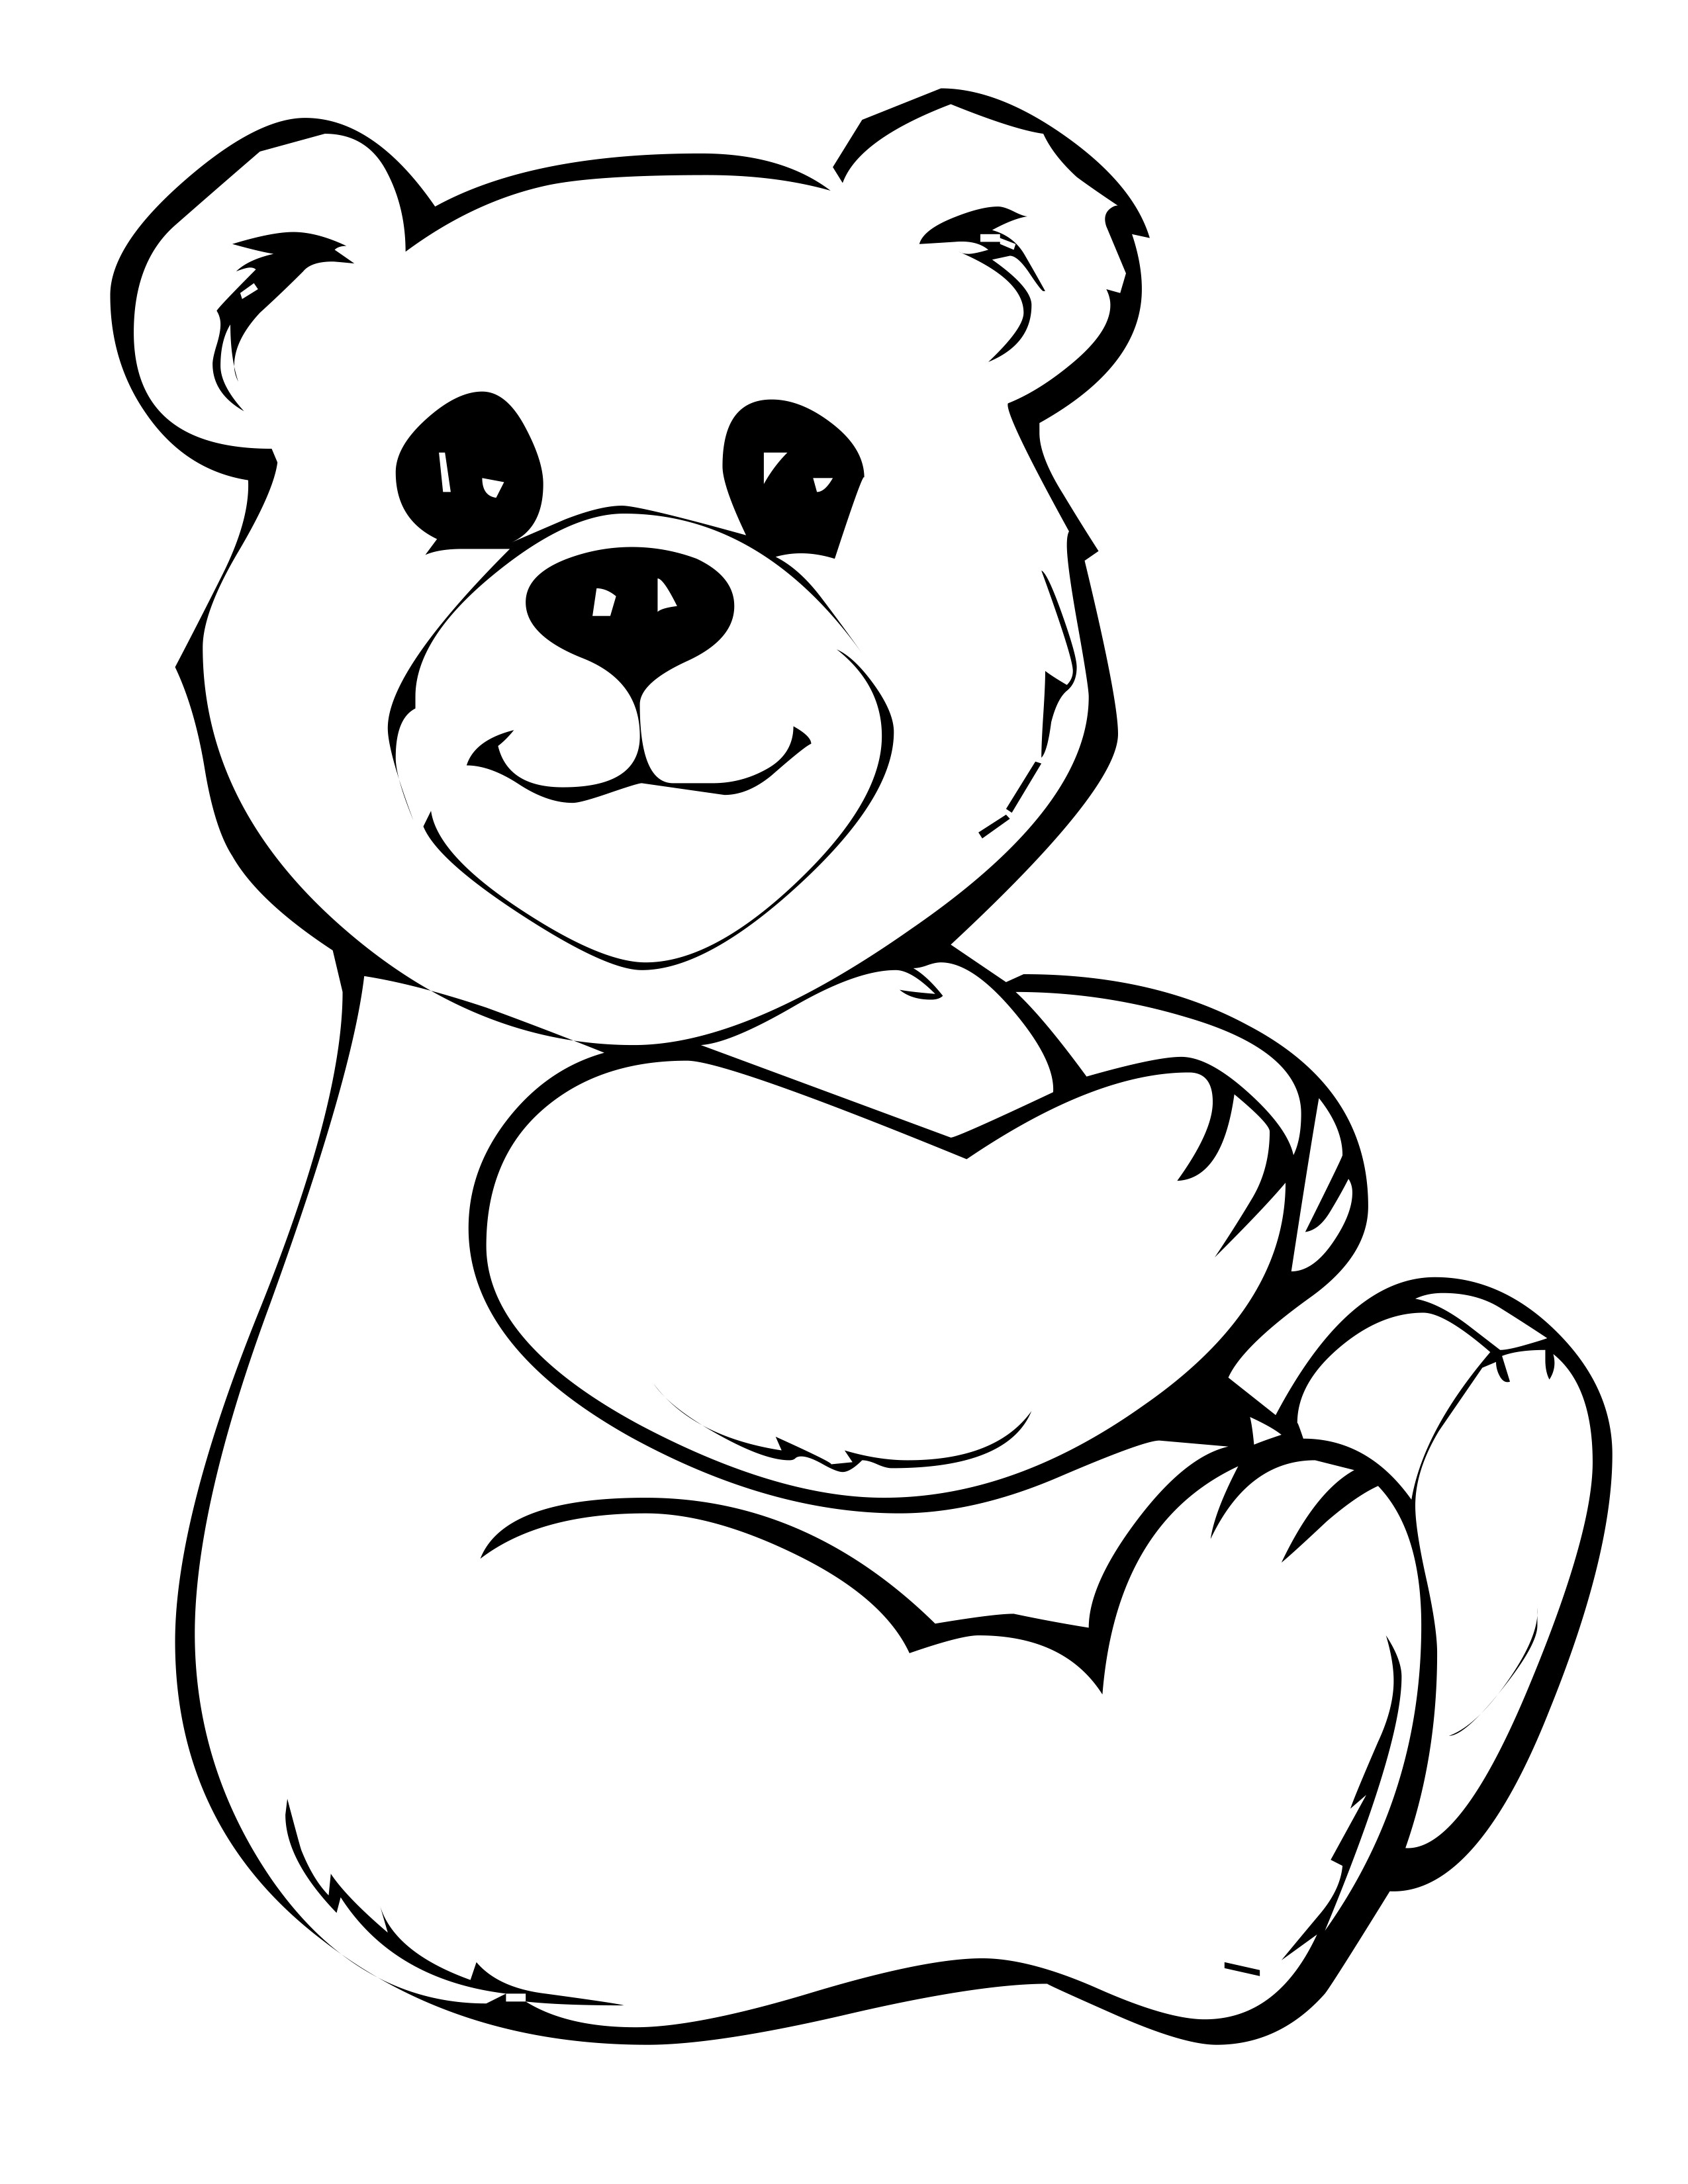 colouring teddy bear free bear coloring pages teddy colouring bear